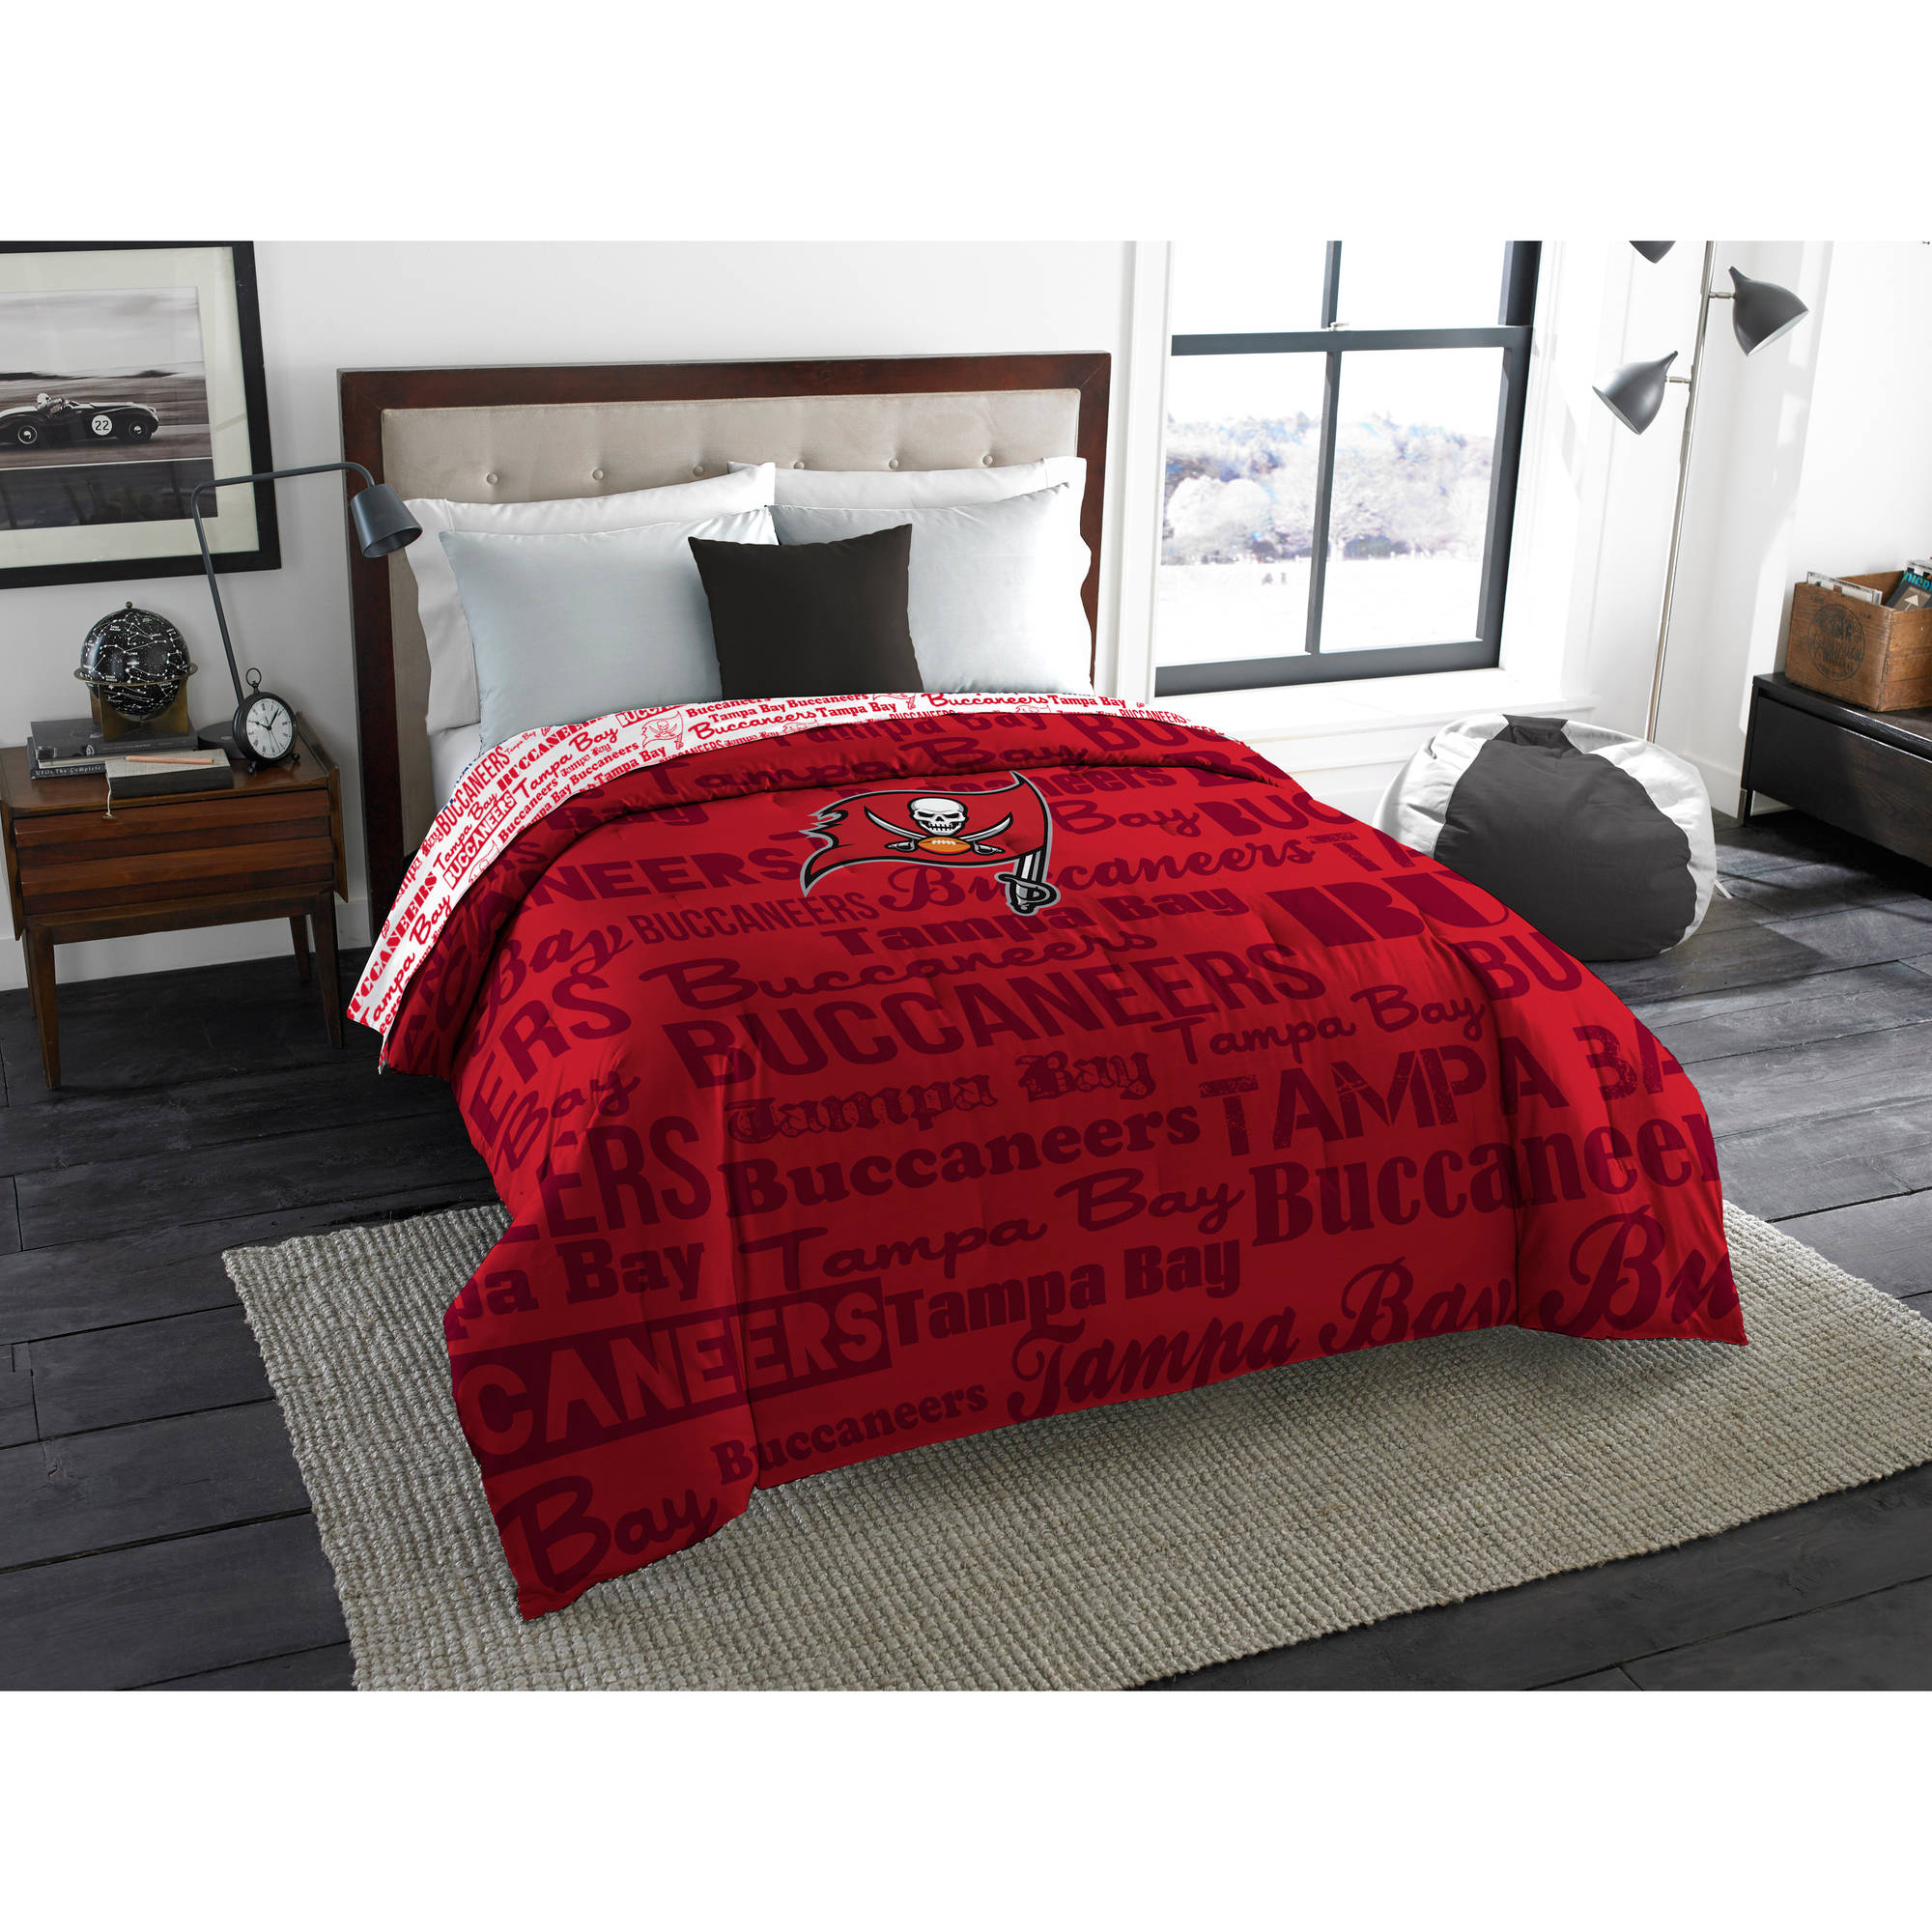 NFL Tampa Bay Buccaneers Twin/Full Bedding Comforter